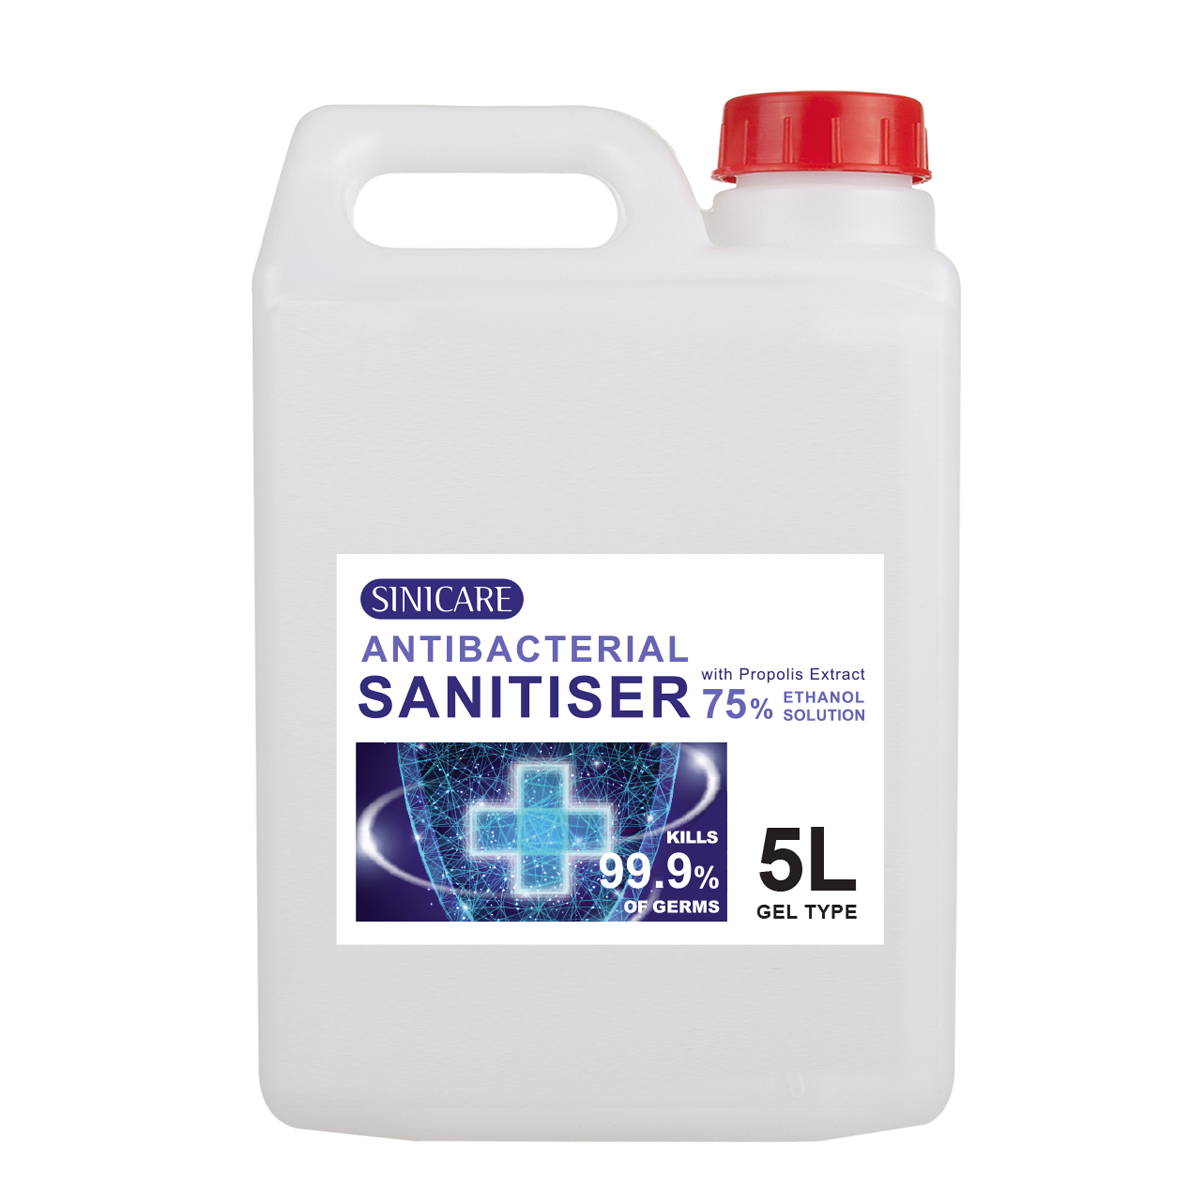 Sinicare Sanitiser 5L Gel type